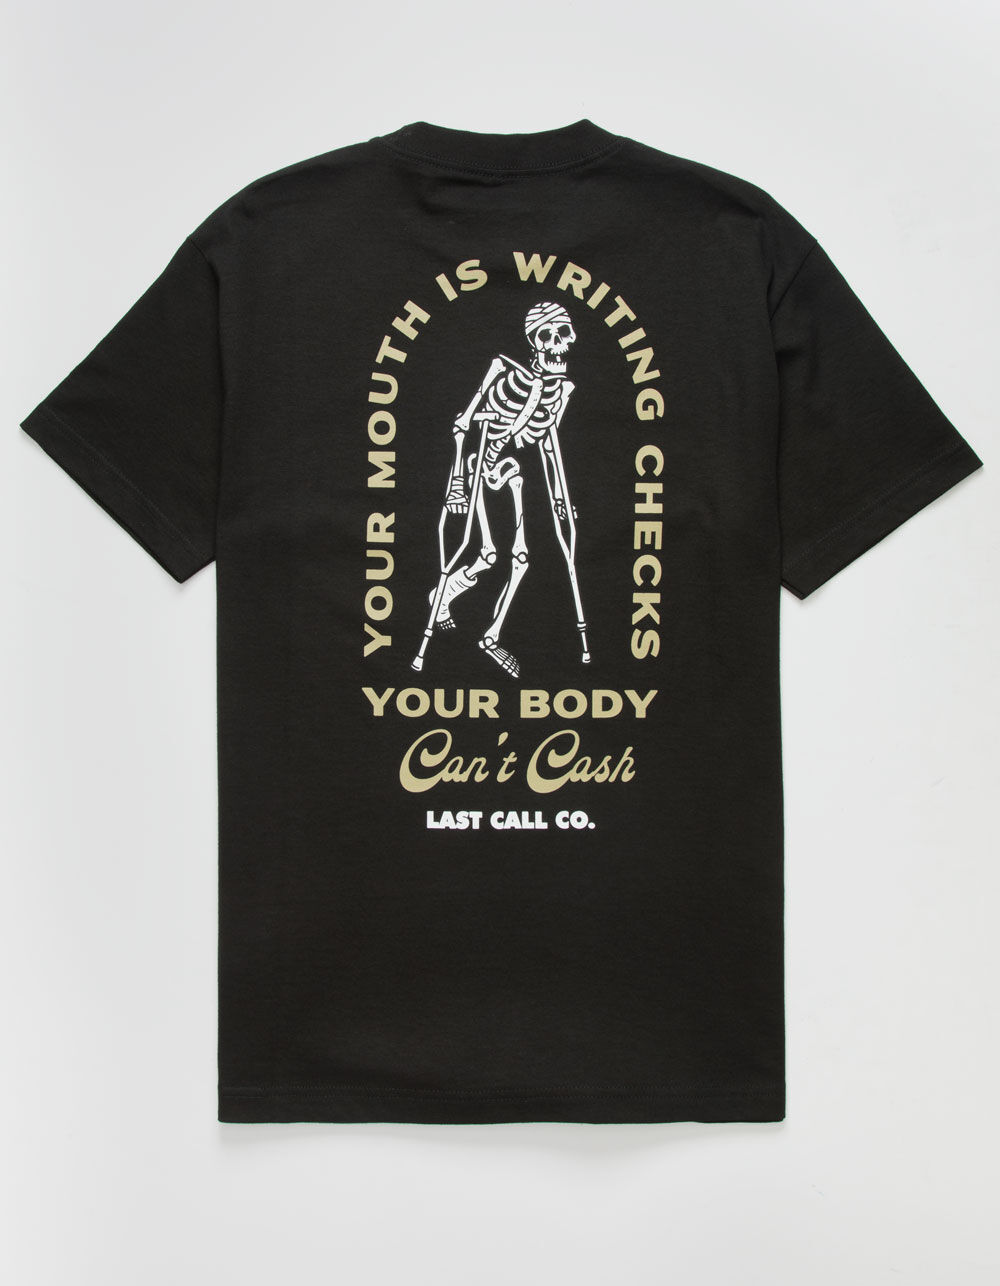 Image of LAST CALL CO. Can't Cash T-Shirt